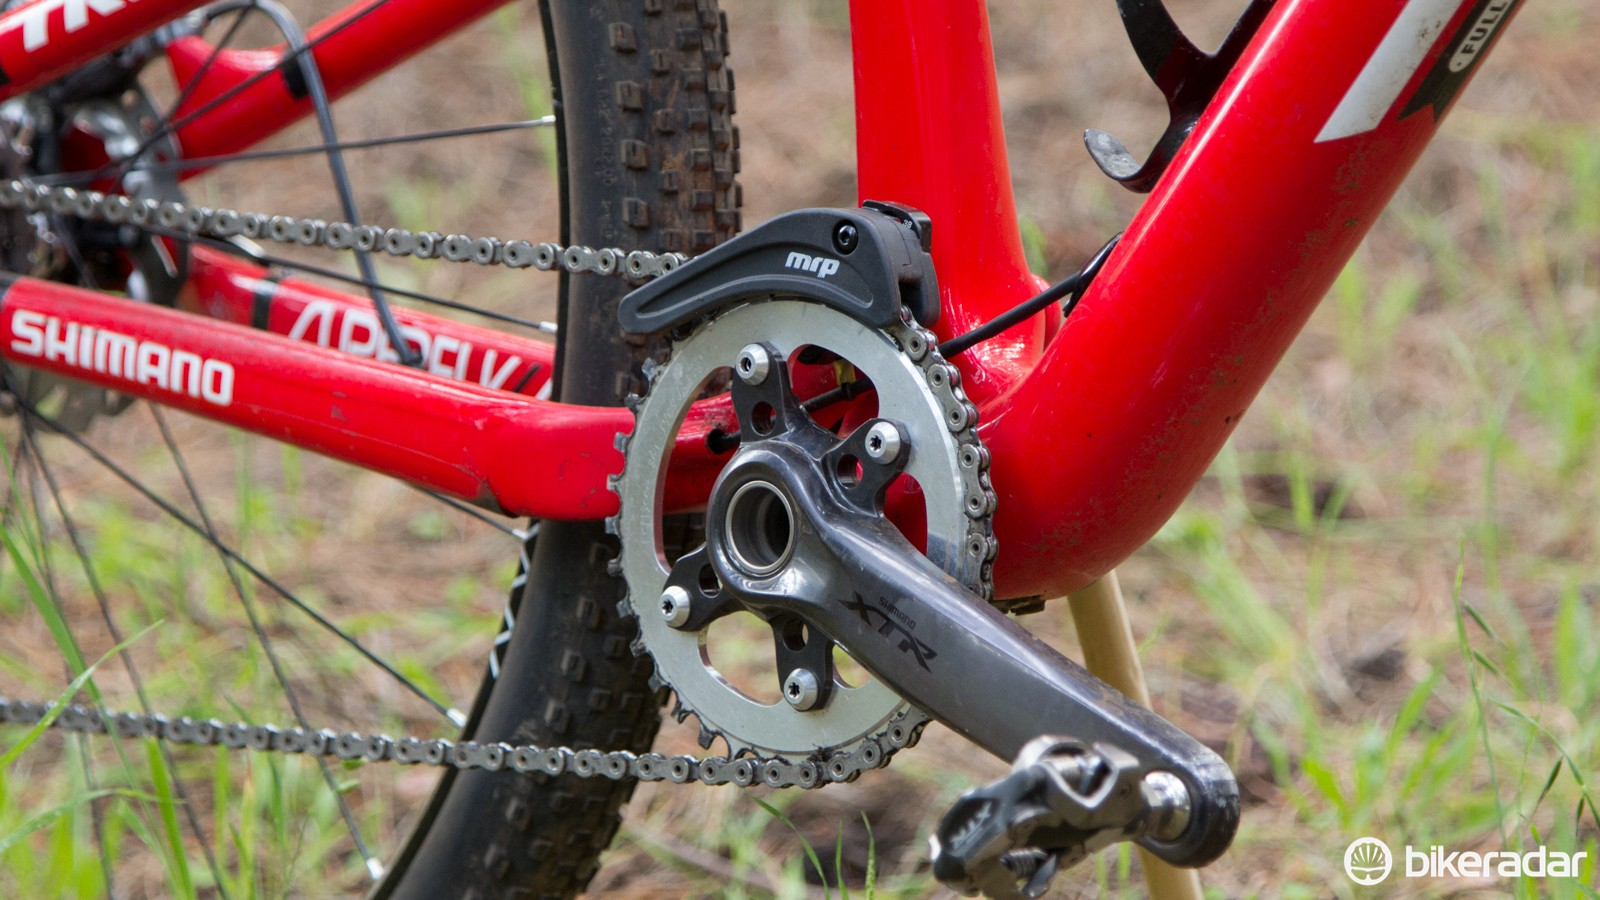 The prototype Shimano 36T single ring features a slightly hooked and raised tooth profile for chain security, but McConnell's mechanic is taking no chances and has fitted a MRP 1X top chainguide too